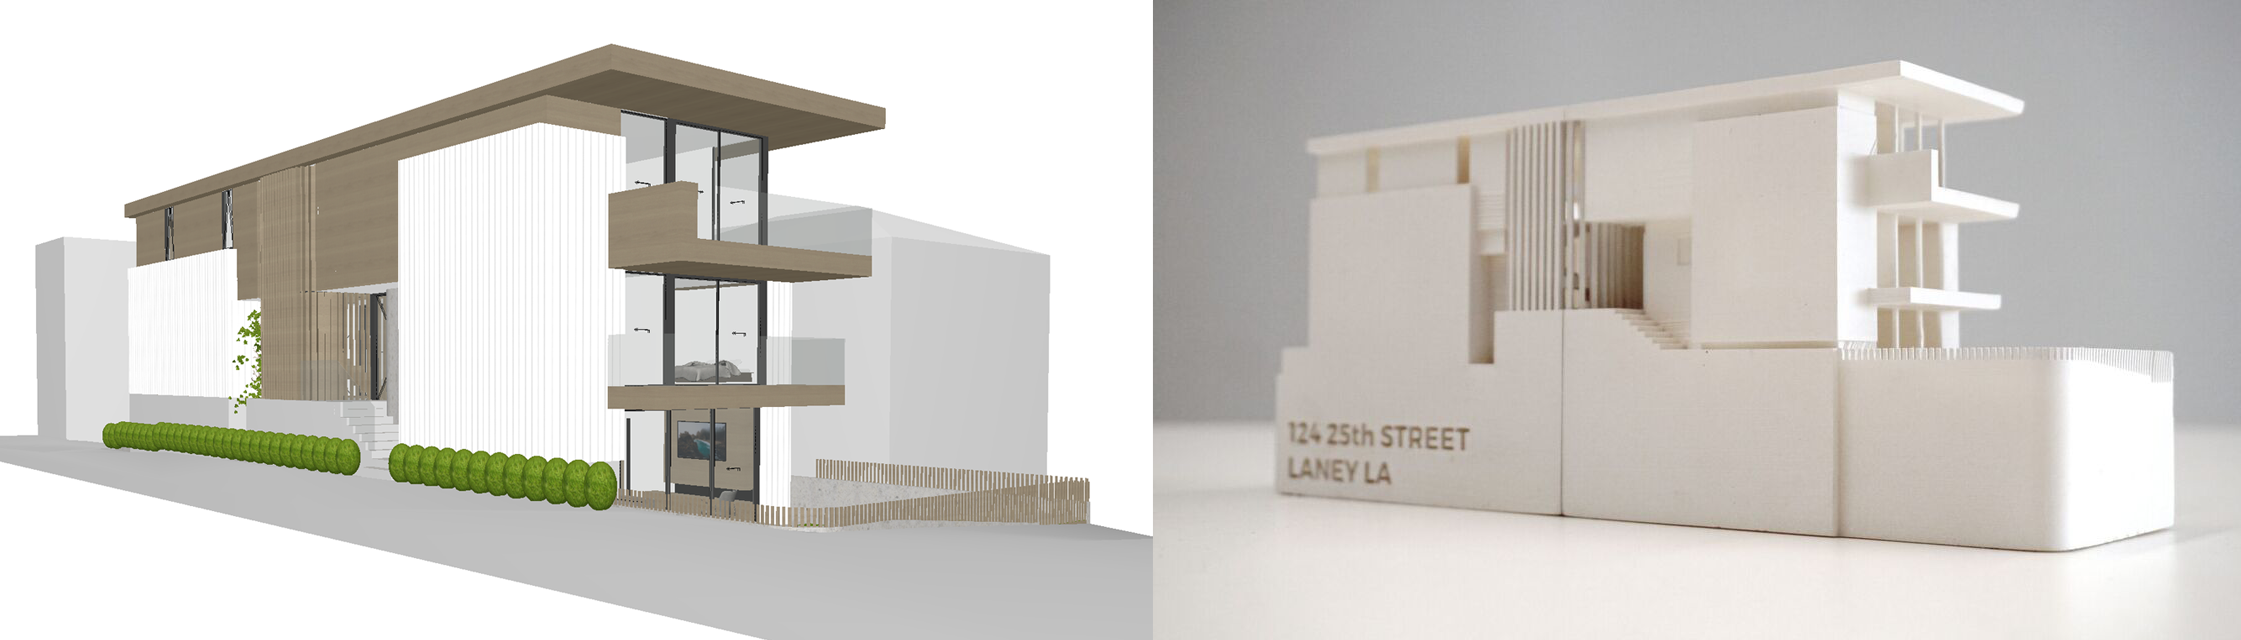 A digital rendering of a house next to a 3D printed model of the same house.